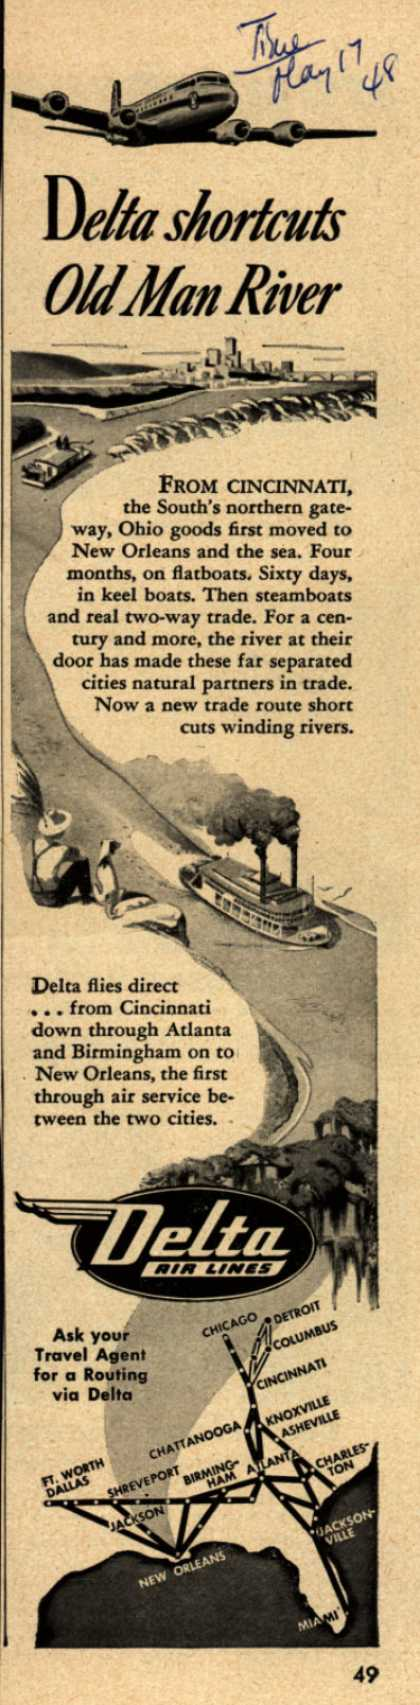 Delta Airline's Delta Air Lines – Delta shortcuts Old Man River (1948)